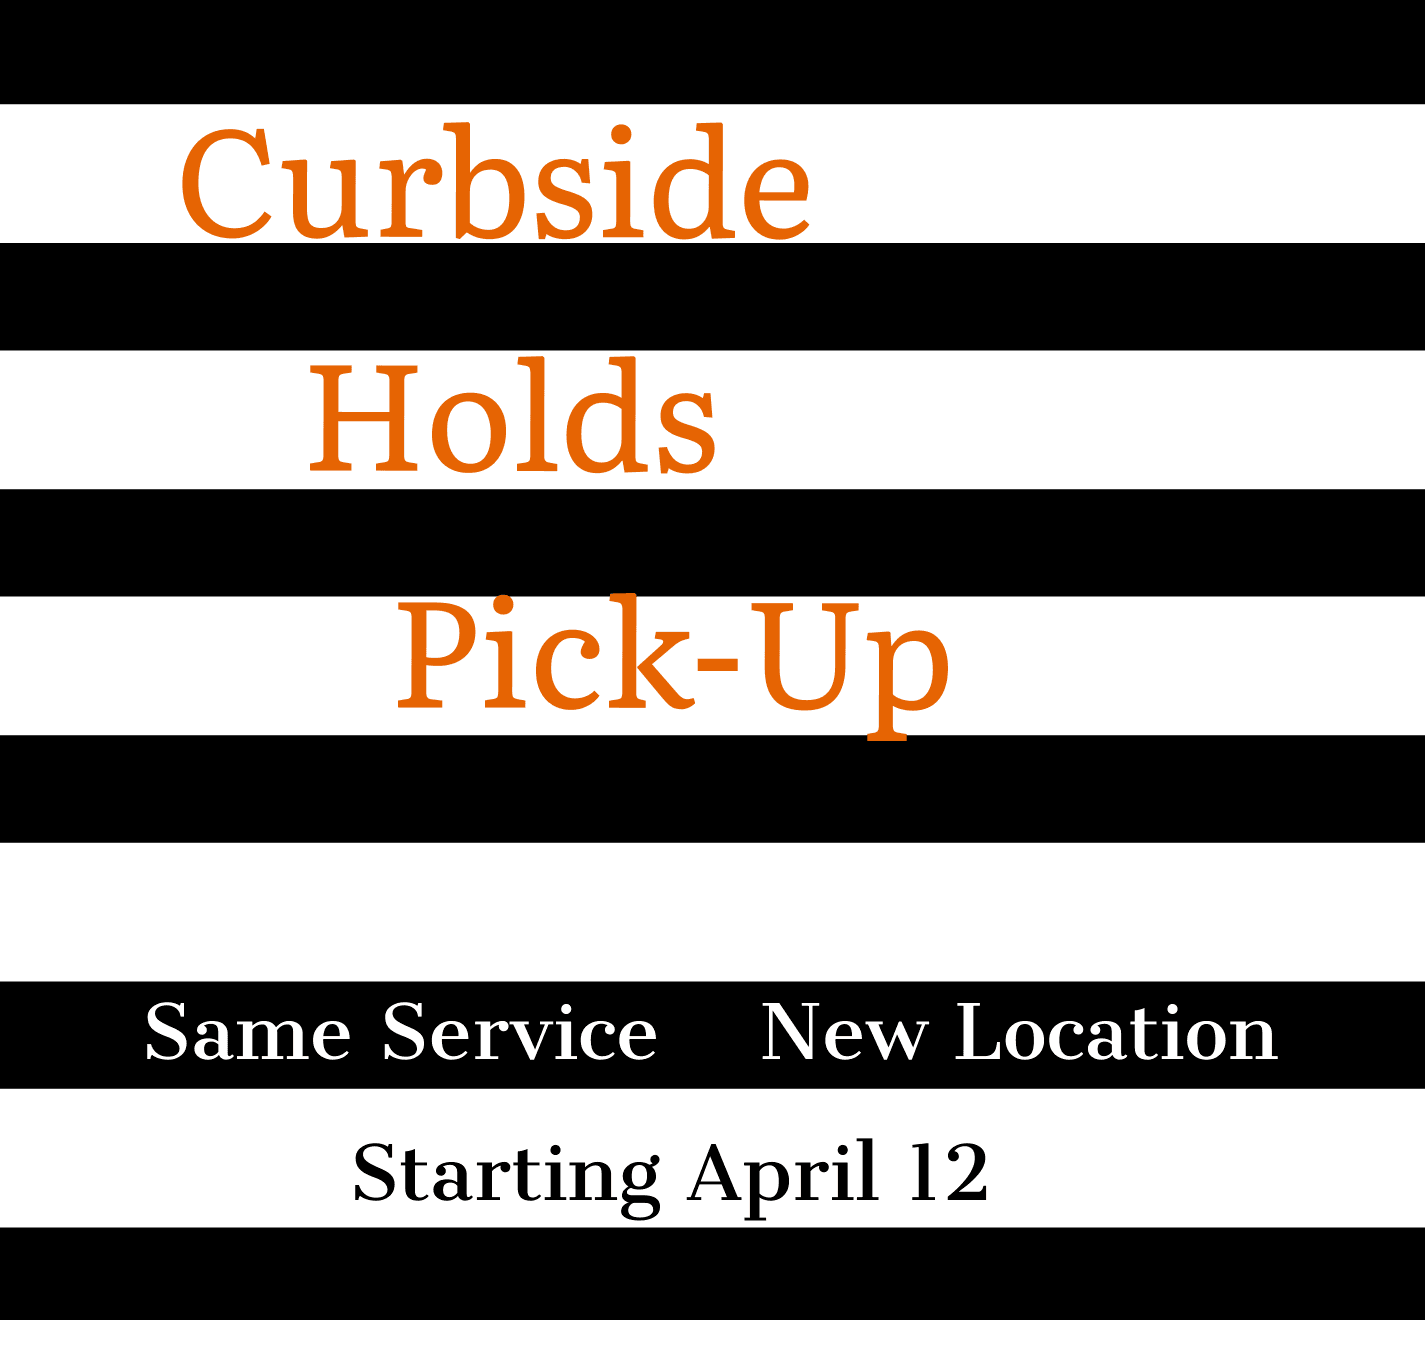 Curbside pick up is moving